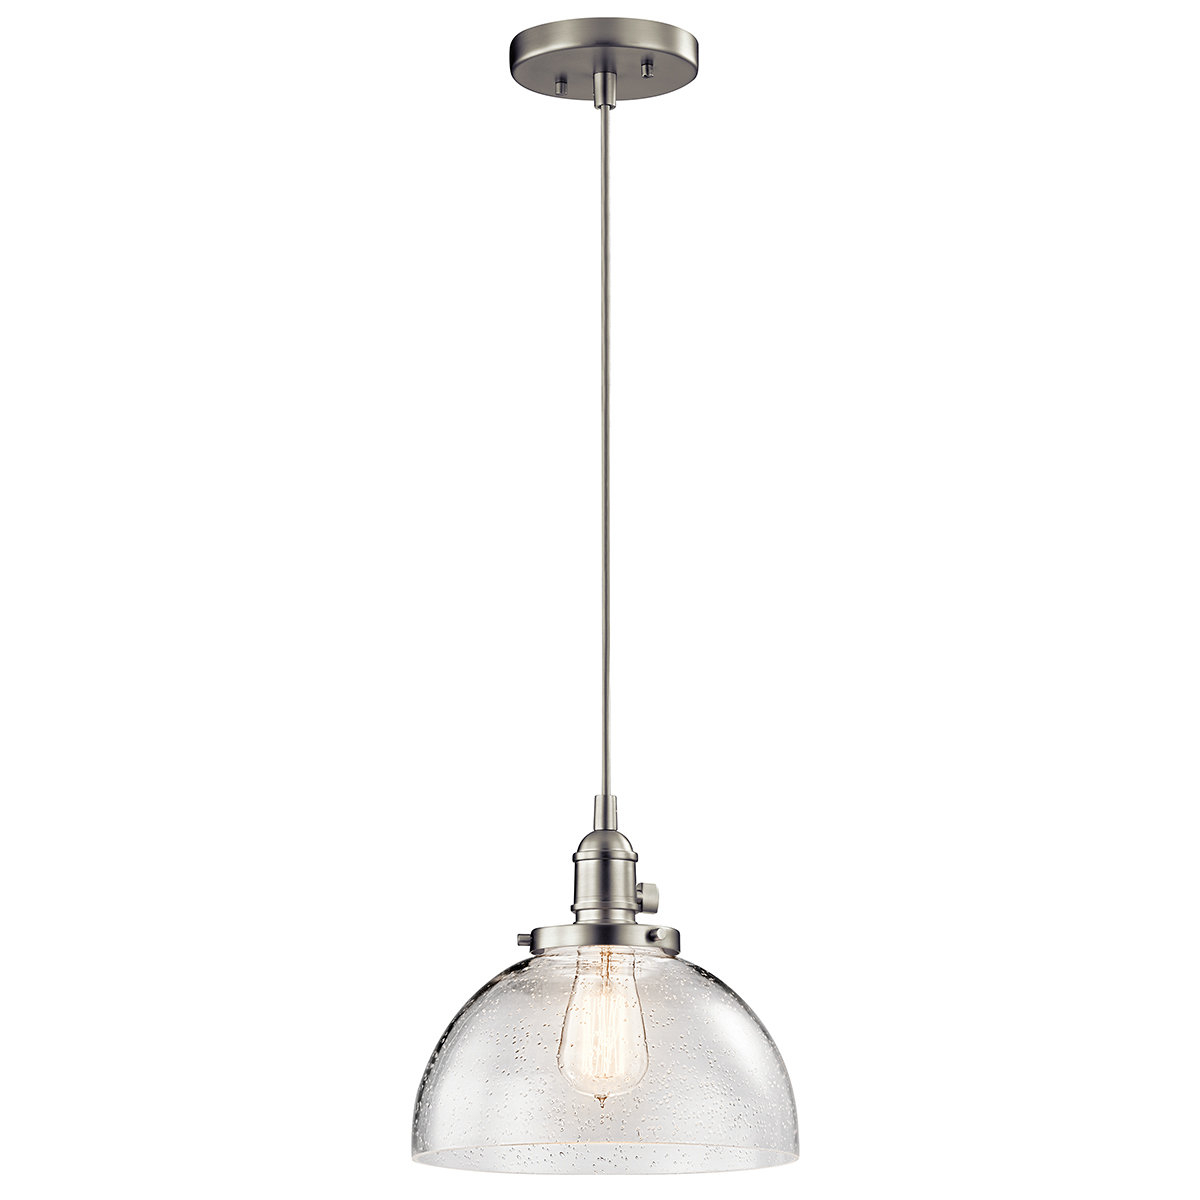 Best and Newest Antioch 1-Light Dome Pendant pertaining to Ninette 1-Light Dome Pendants